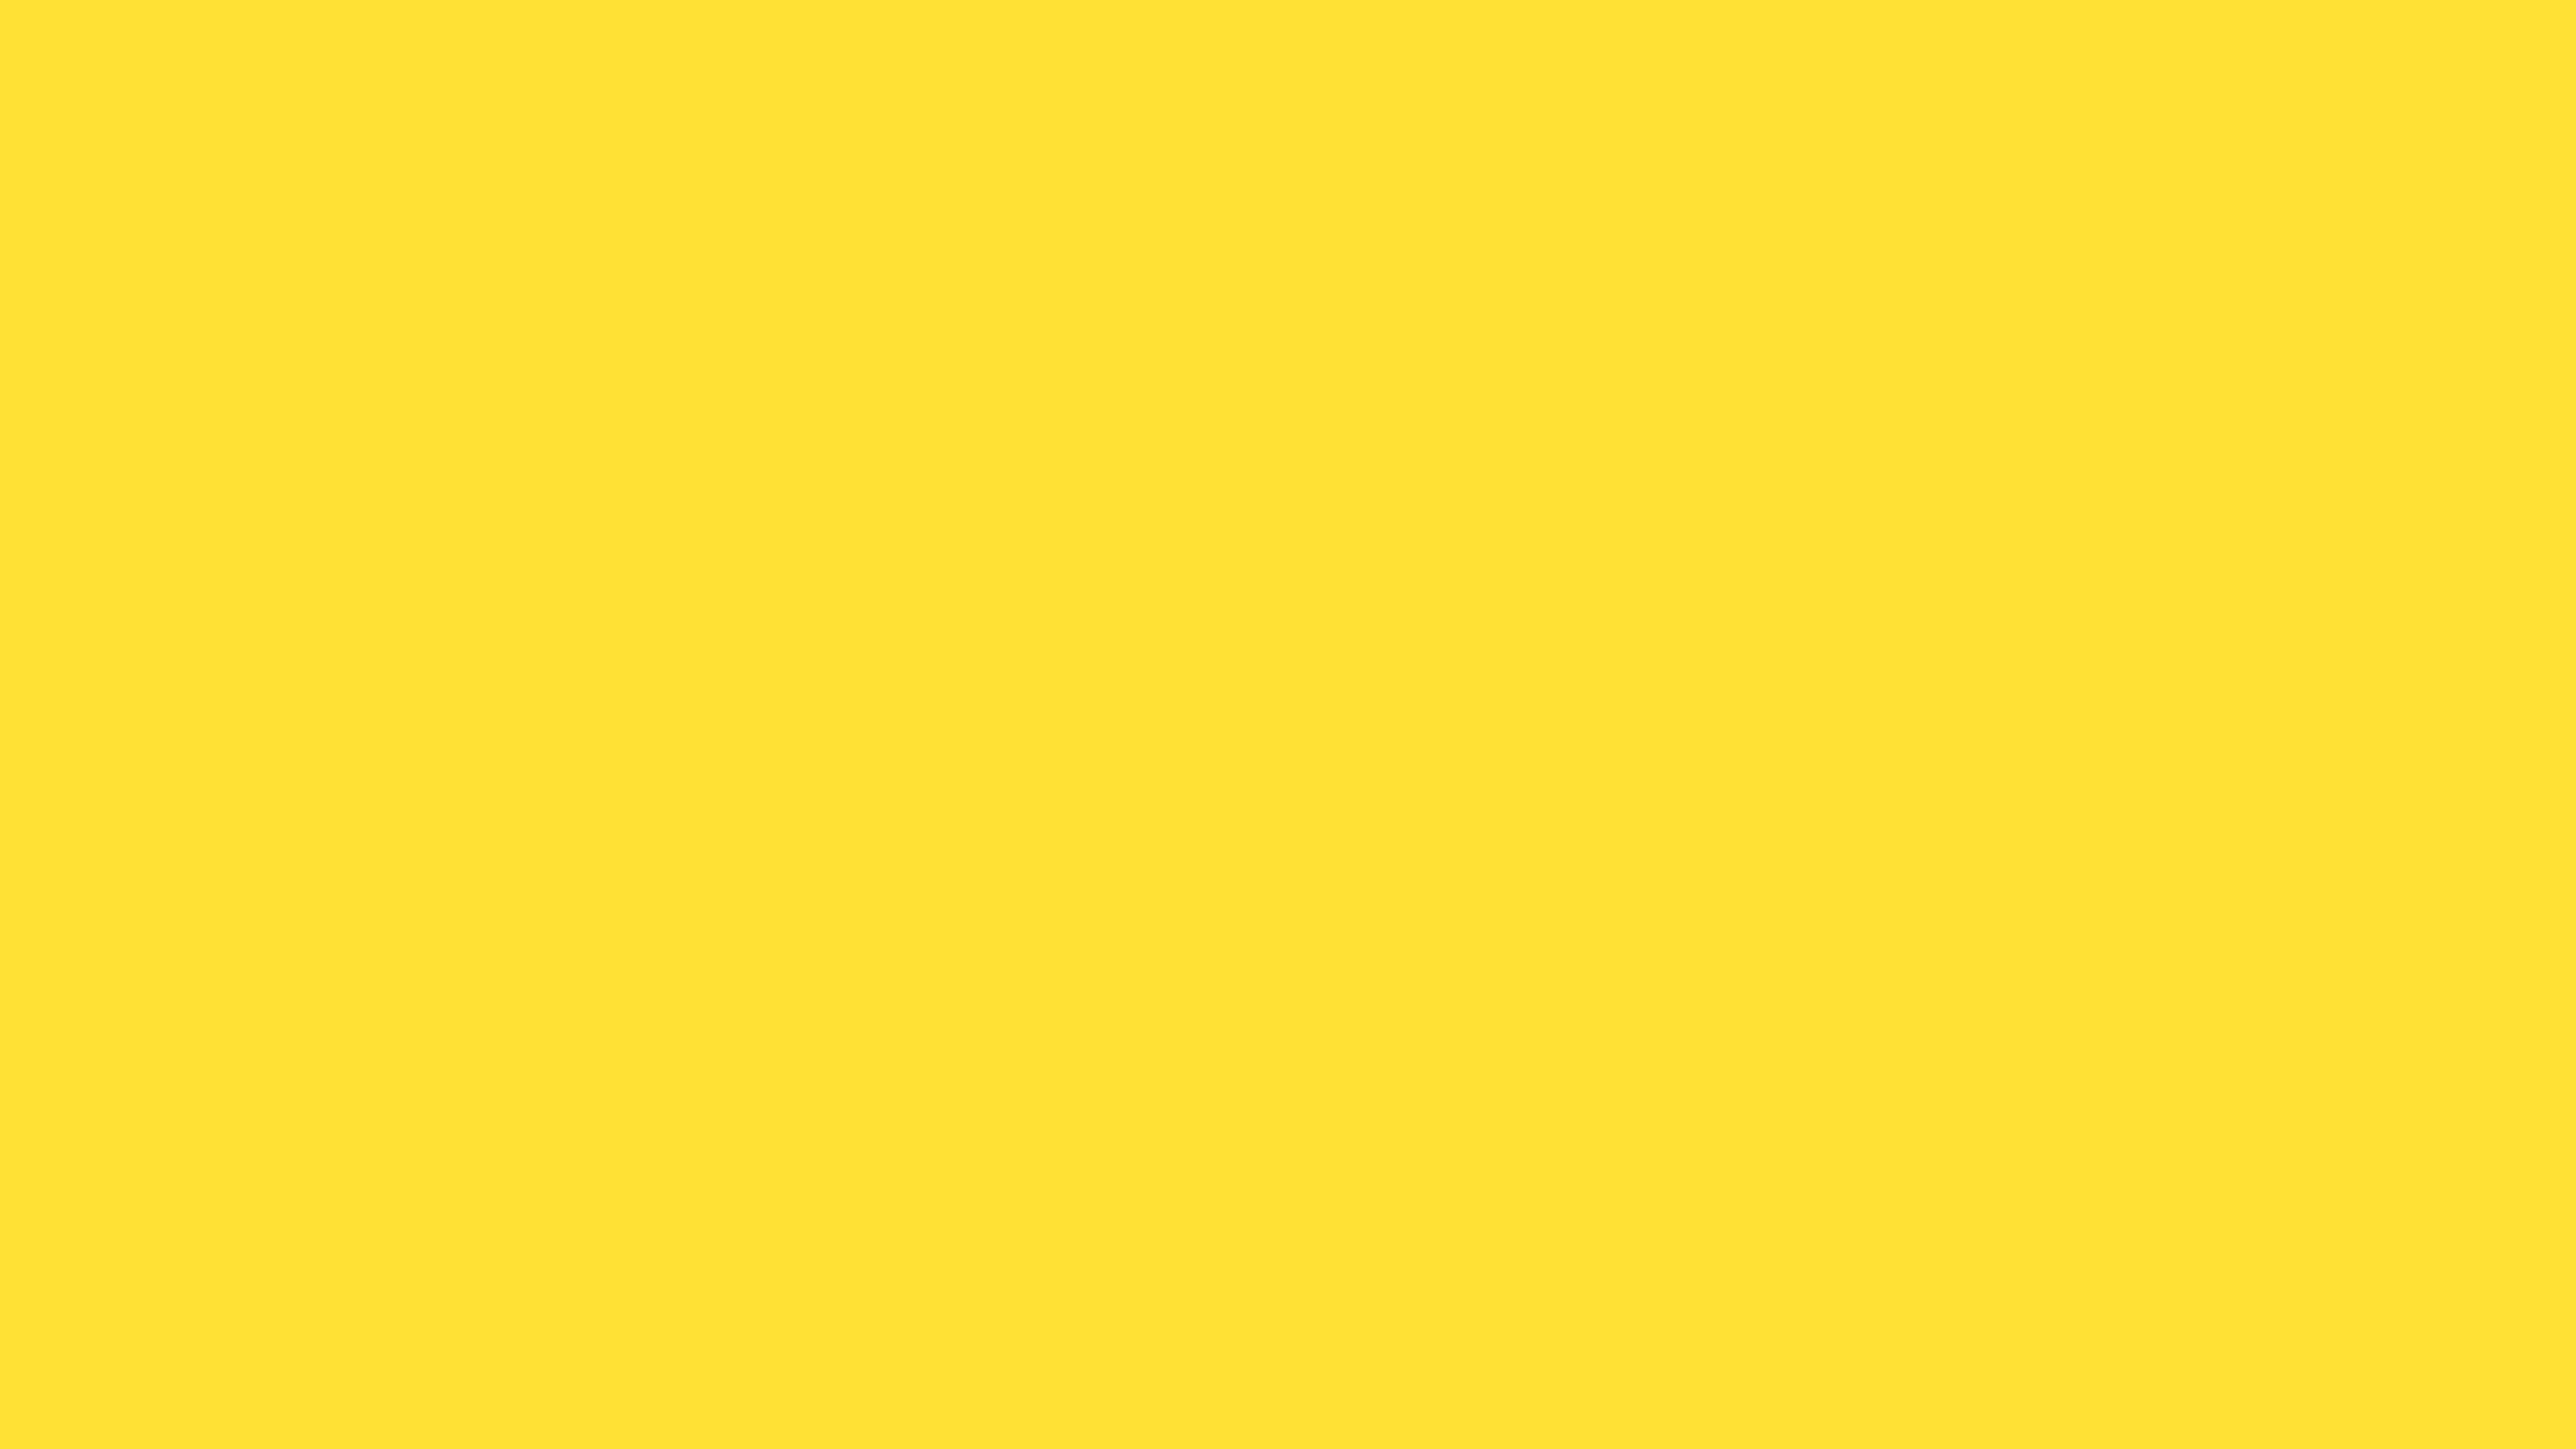 3840x2160 Banana Yellow Solid Color Background